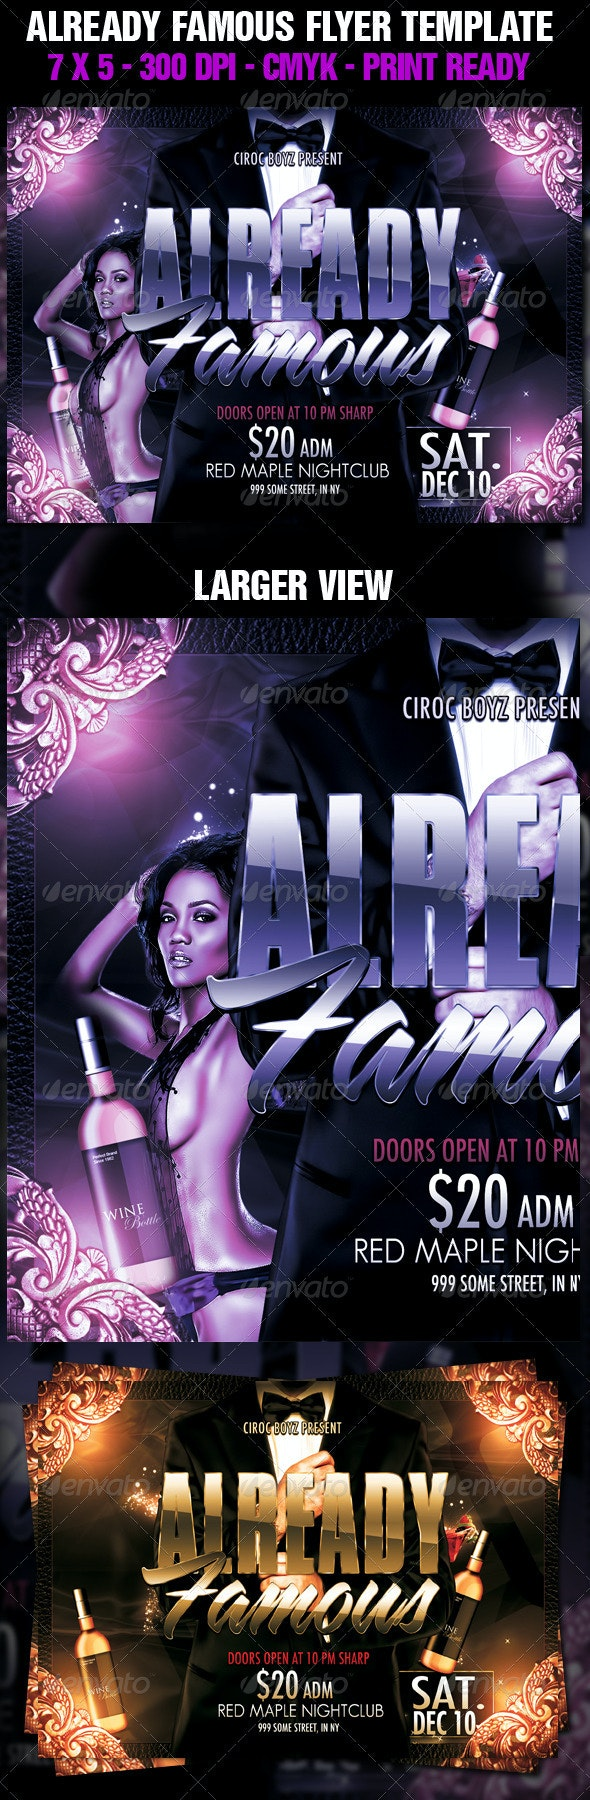 Already Famous Flyer Template - Clubs & Parties Events